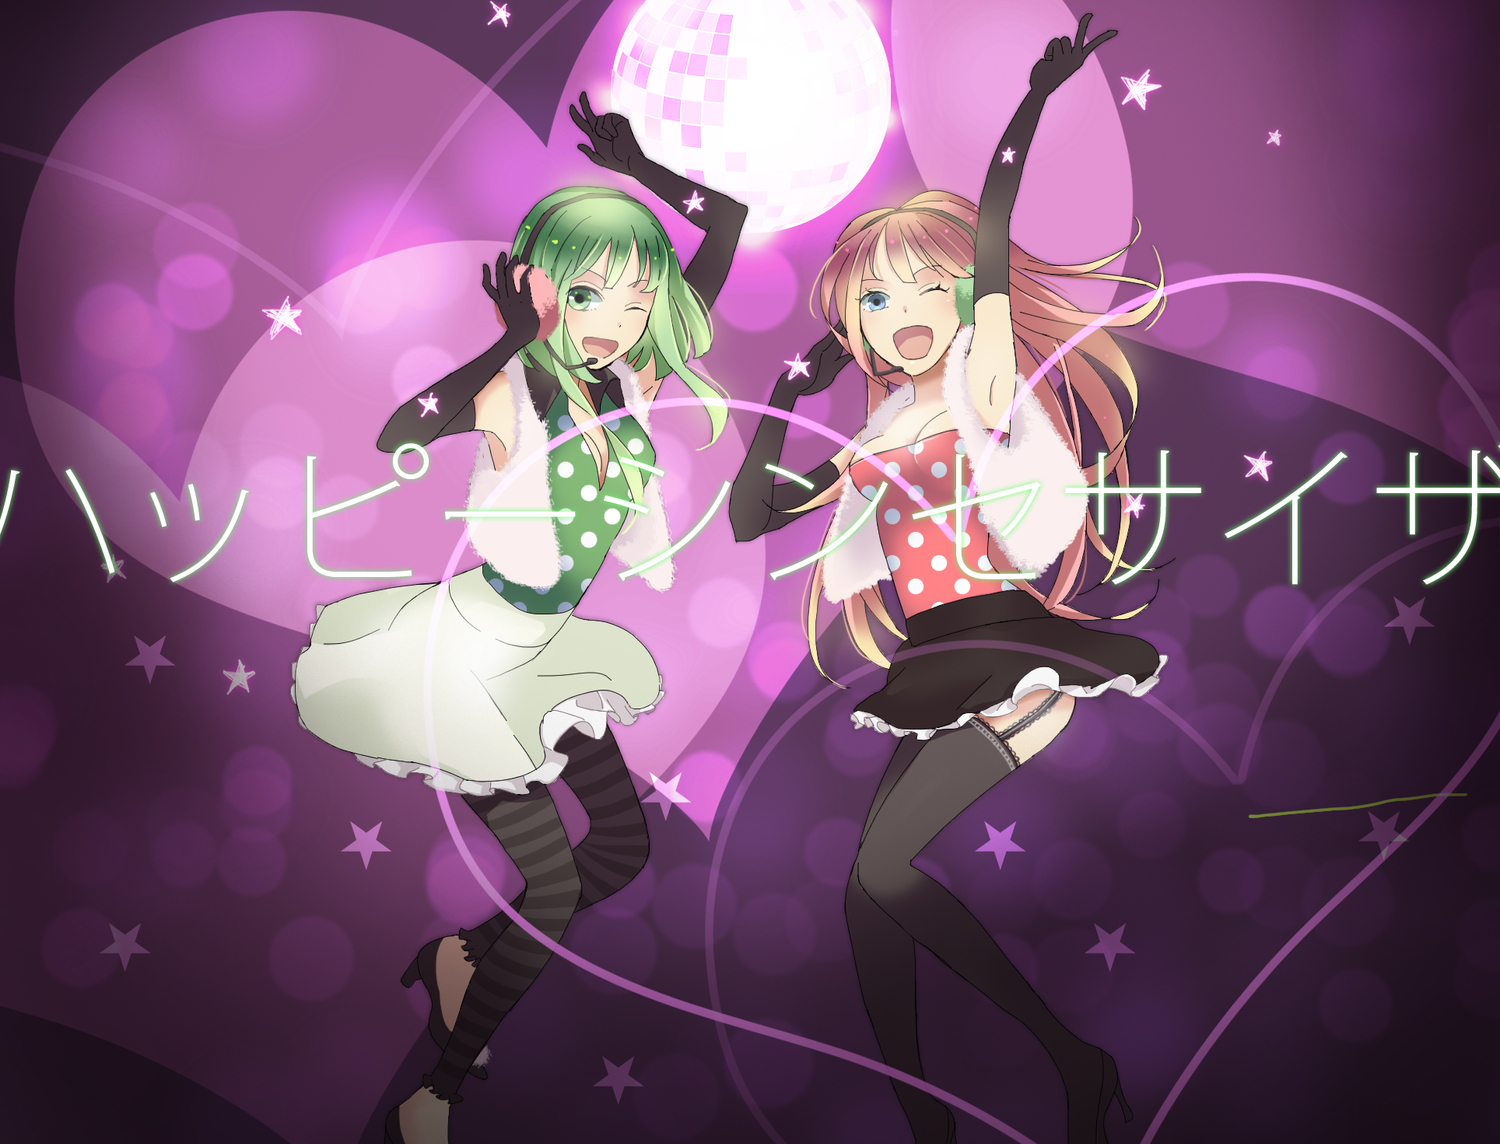 6_(roku) blue_eyes green_eyes green_hair gumi happy_synthesizer_(vocaloid) headphones long_hair megurine_luka pink_hair short_hair skirt thighhighs vocaloid